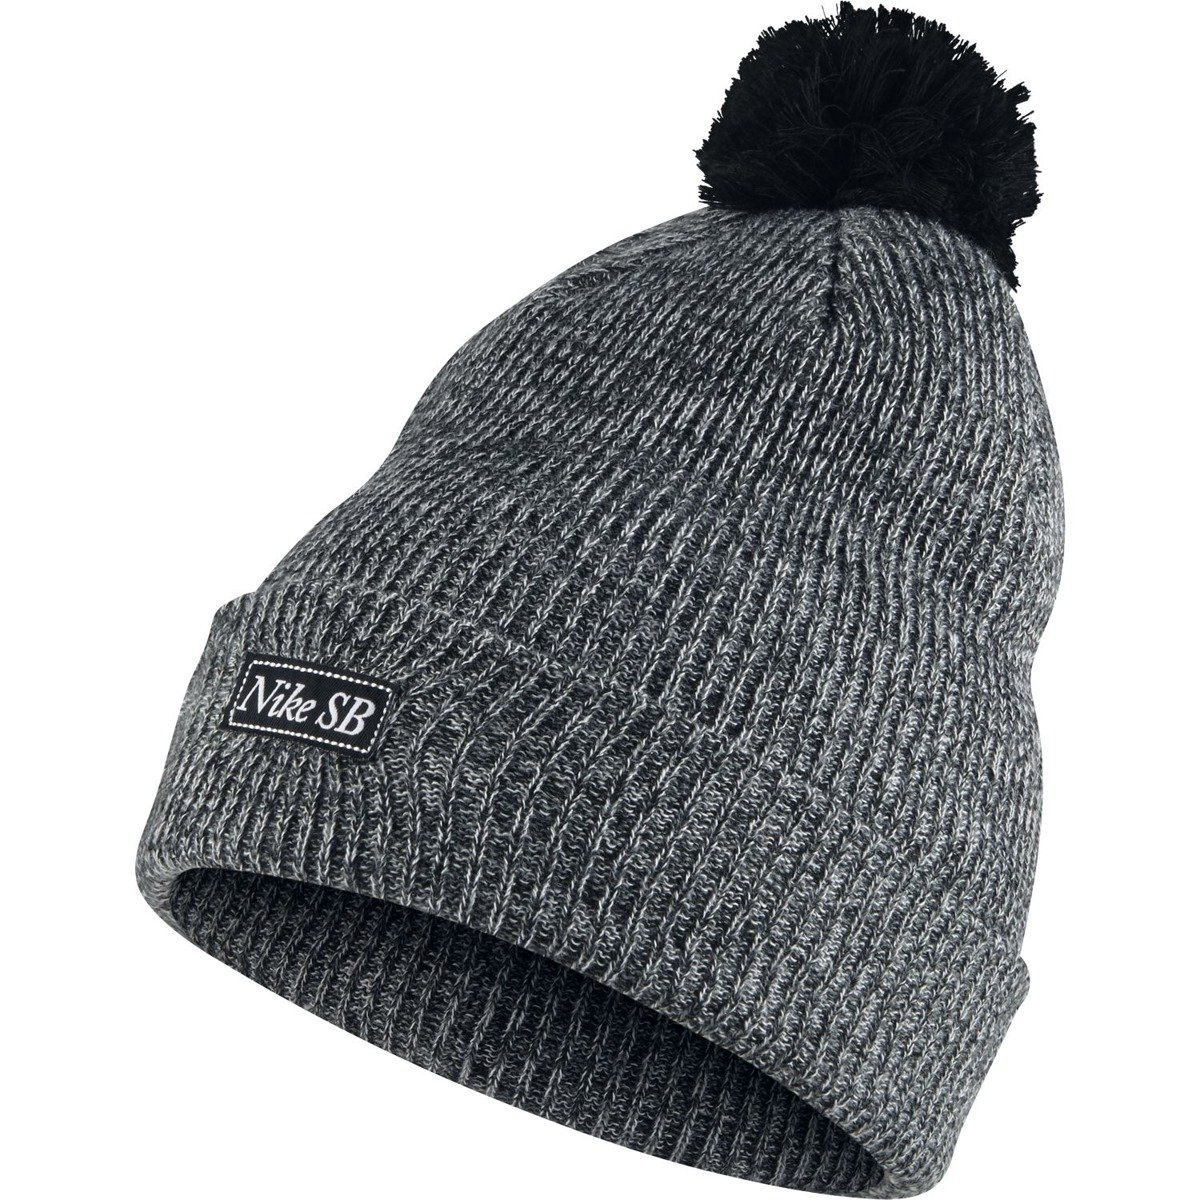 ... where can i buy czapka nike sb 2 in 1 pom knit hat black click to 7736dc875f5b